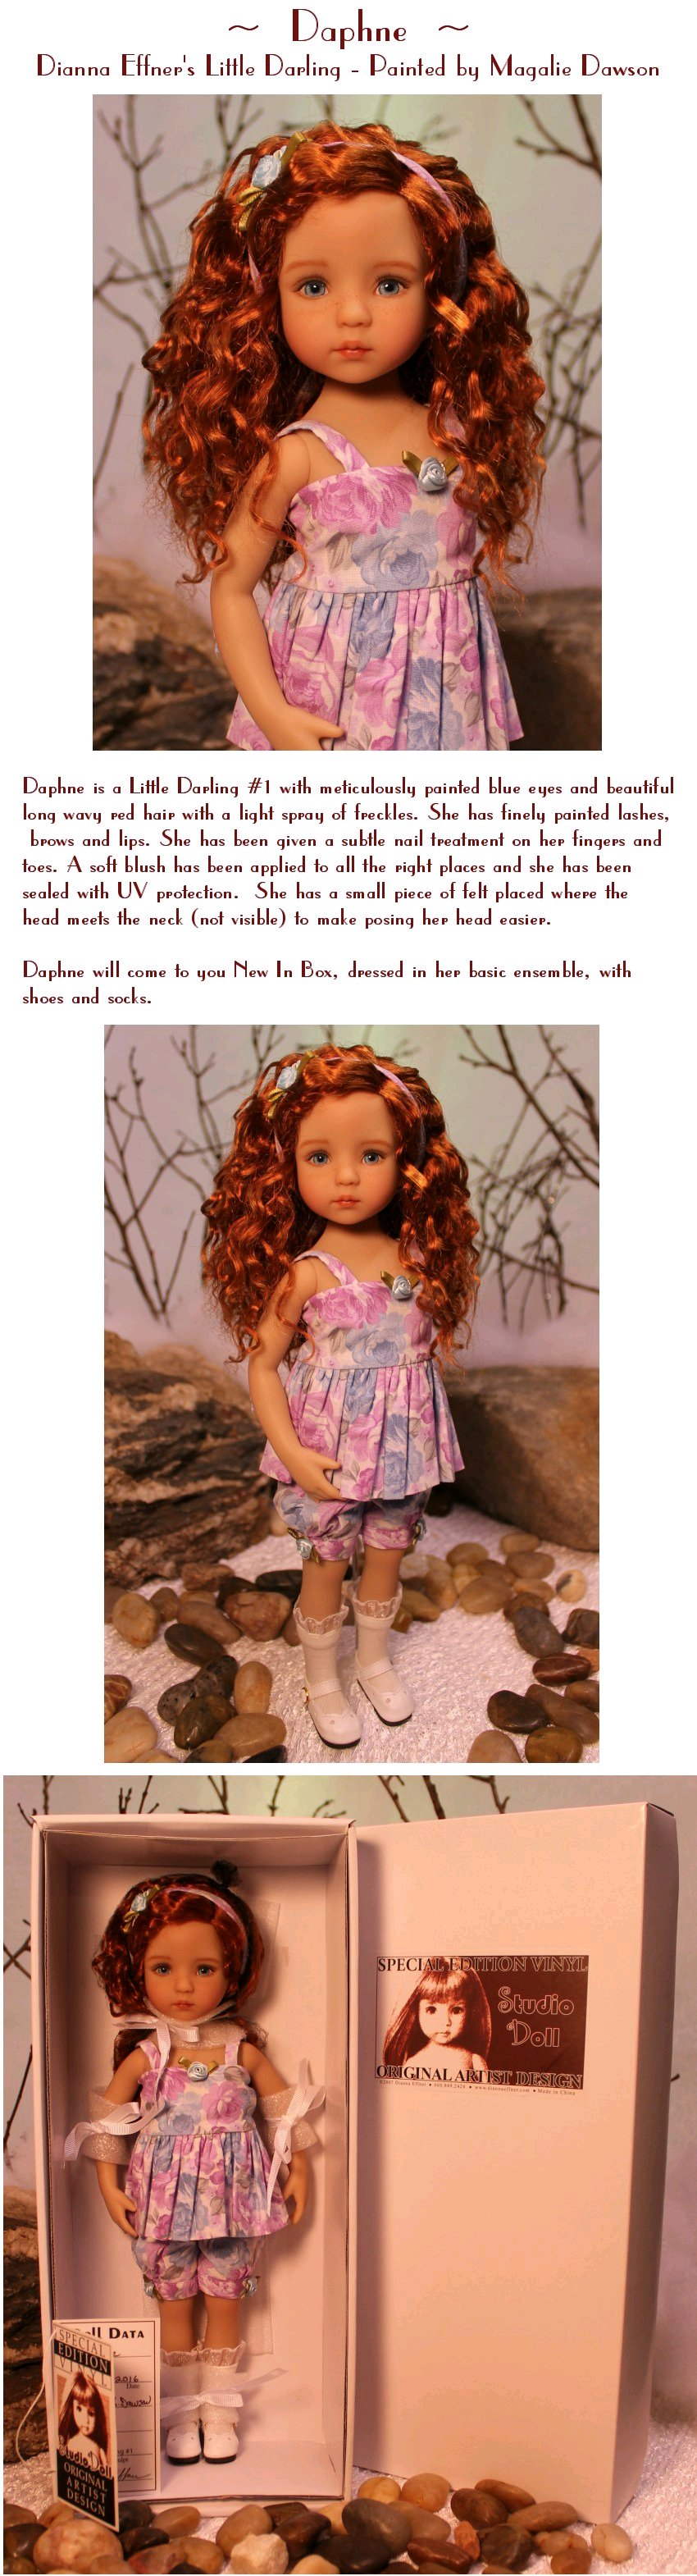 Daphne  - Dianna Effner's Little Darling #1 Painted by Magalie Dawson